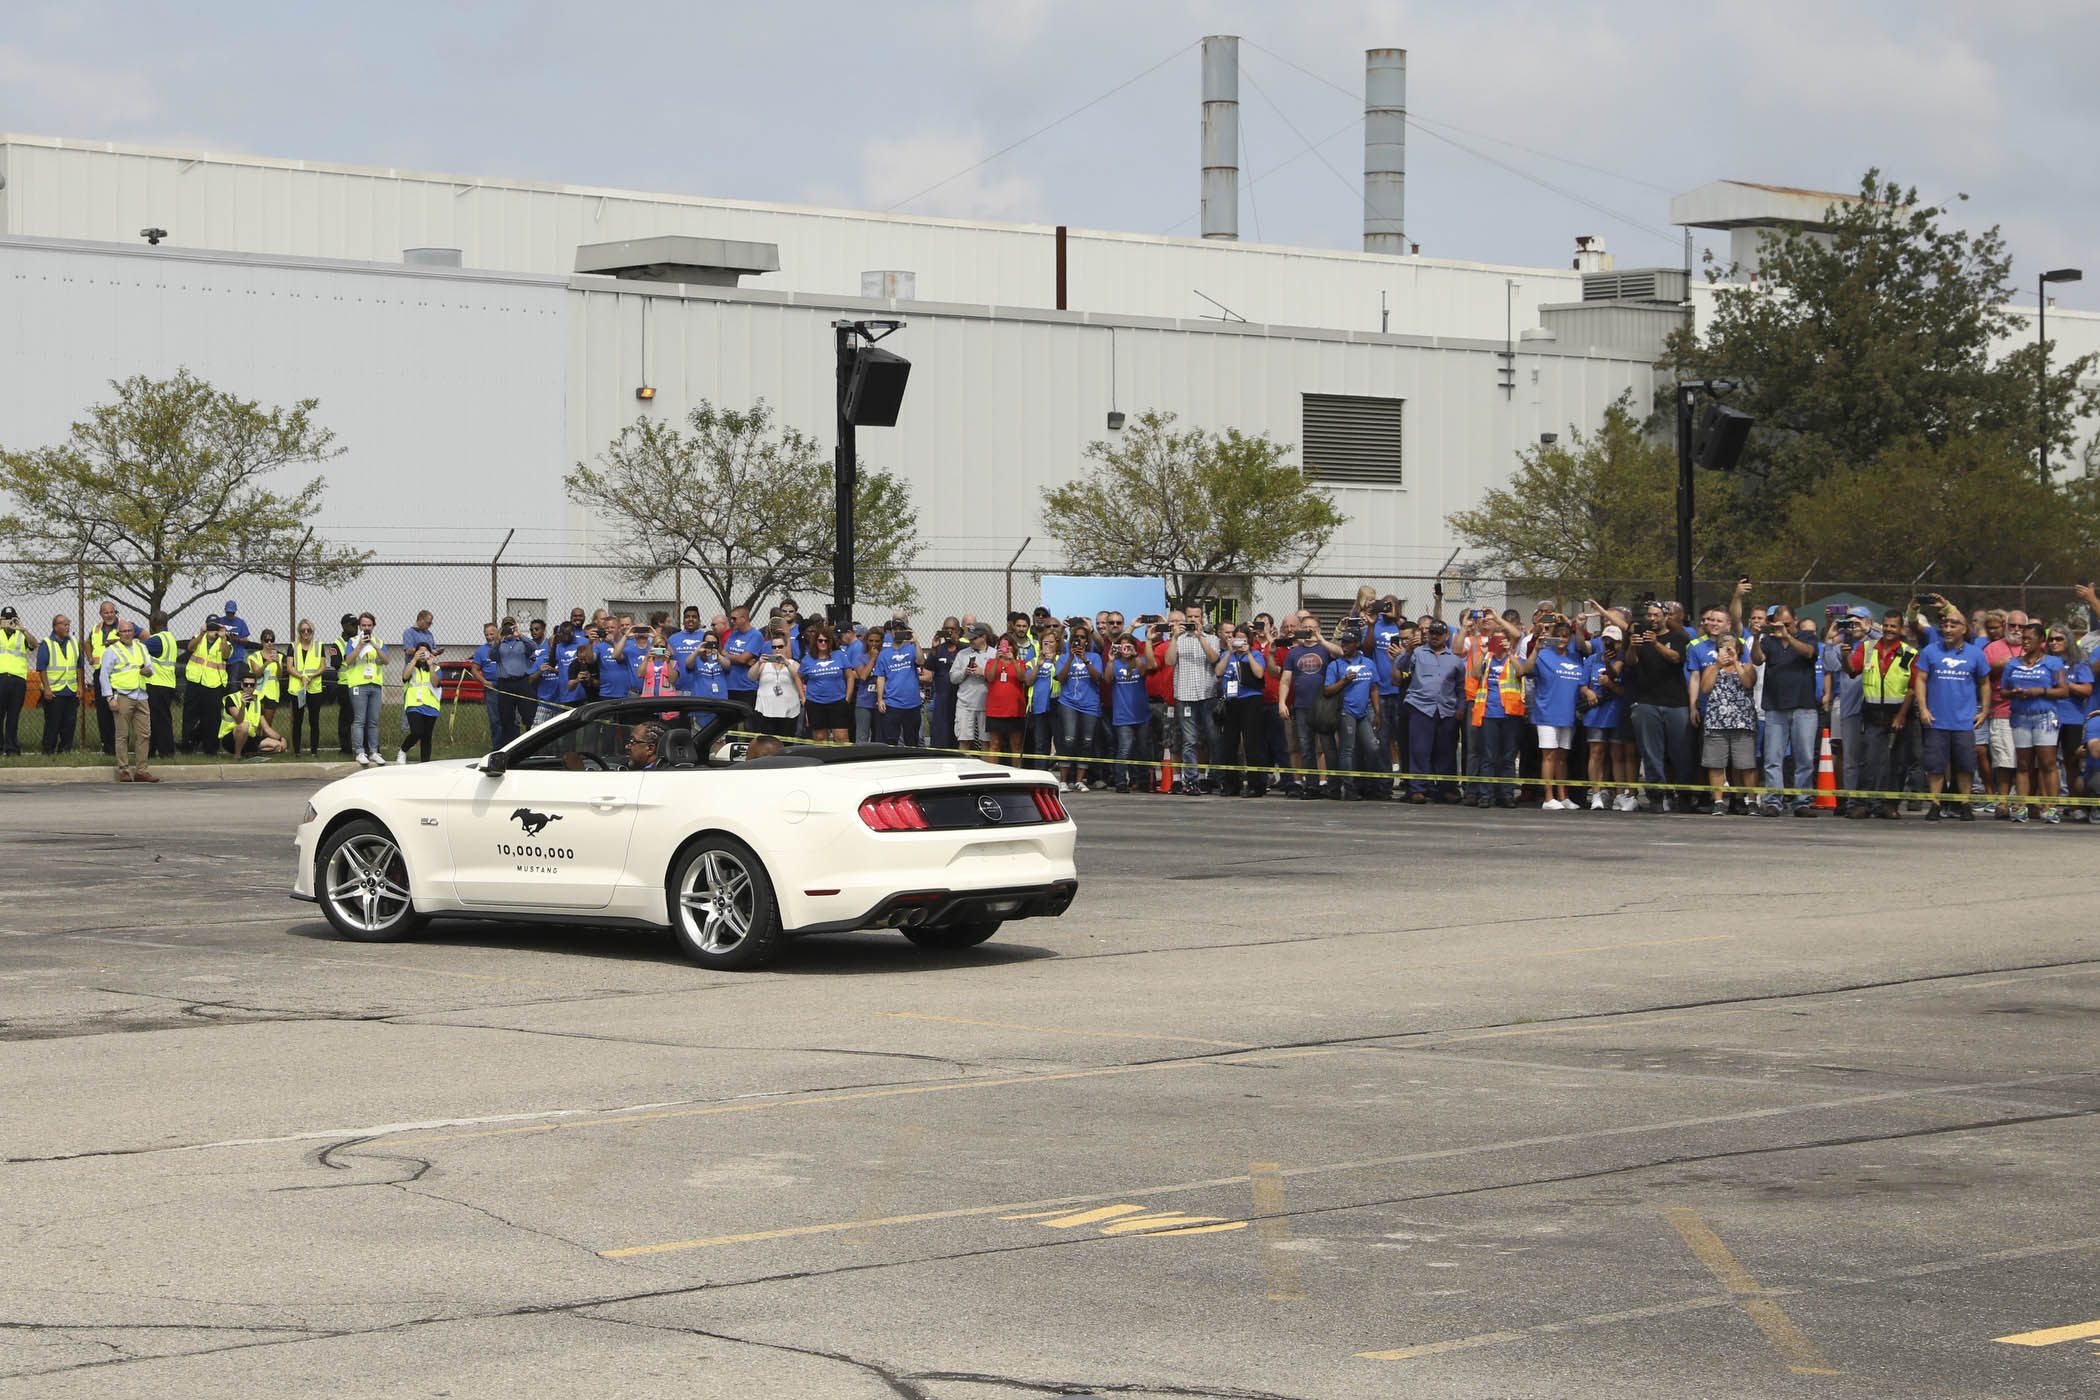 The 10 Millionth Mustang being driven